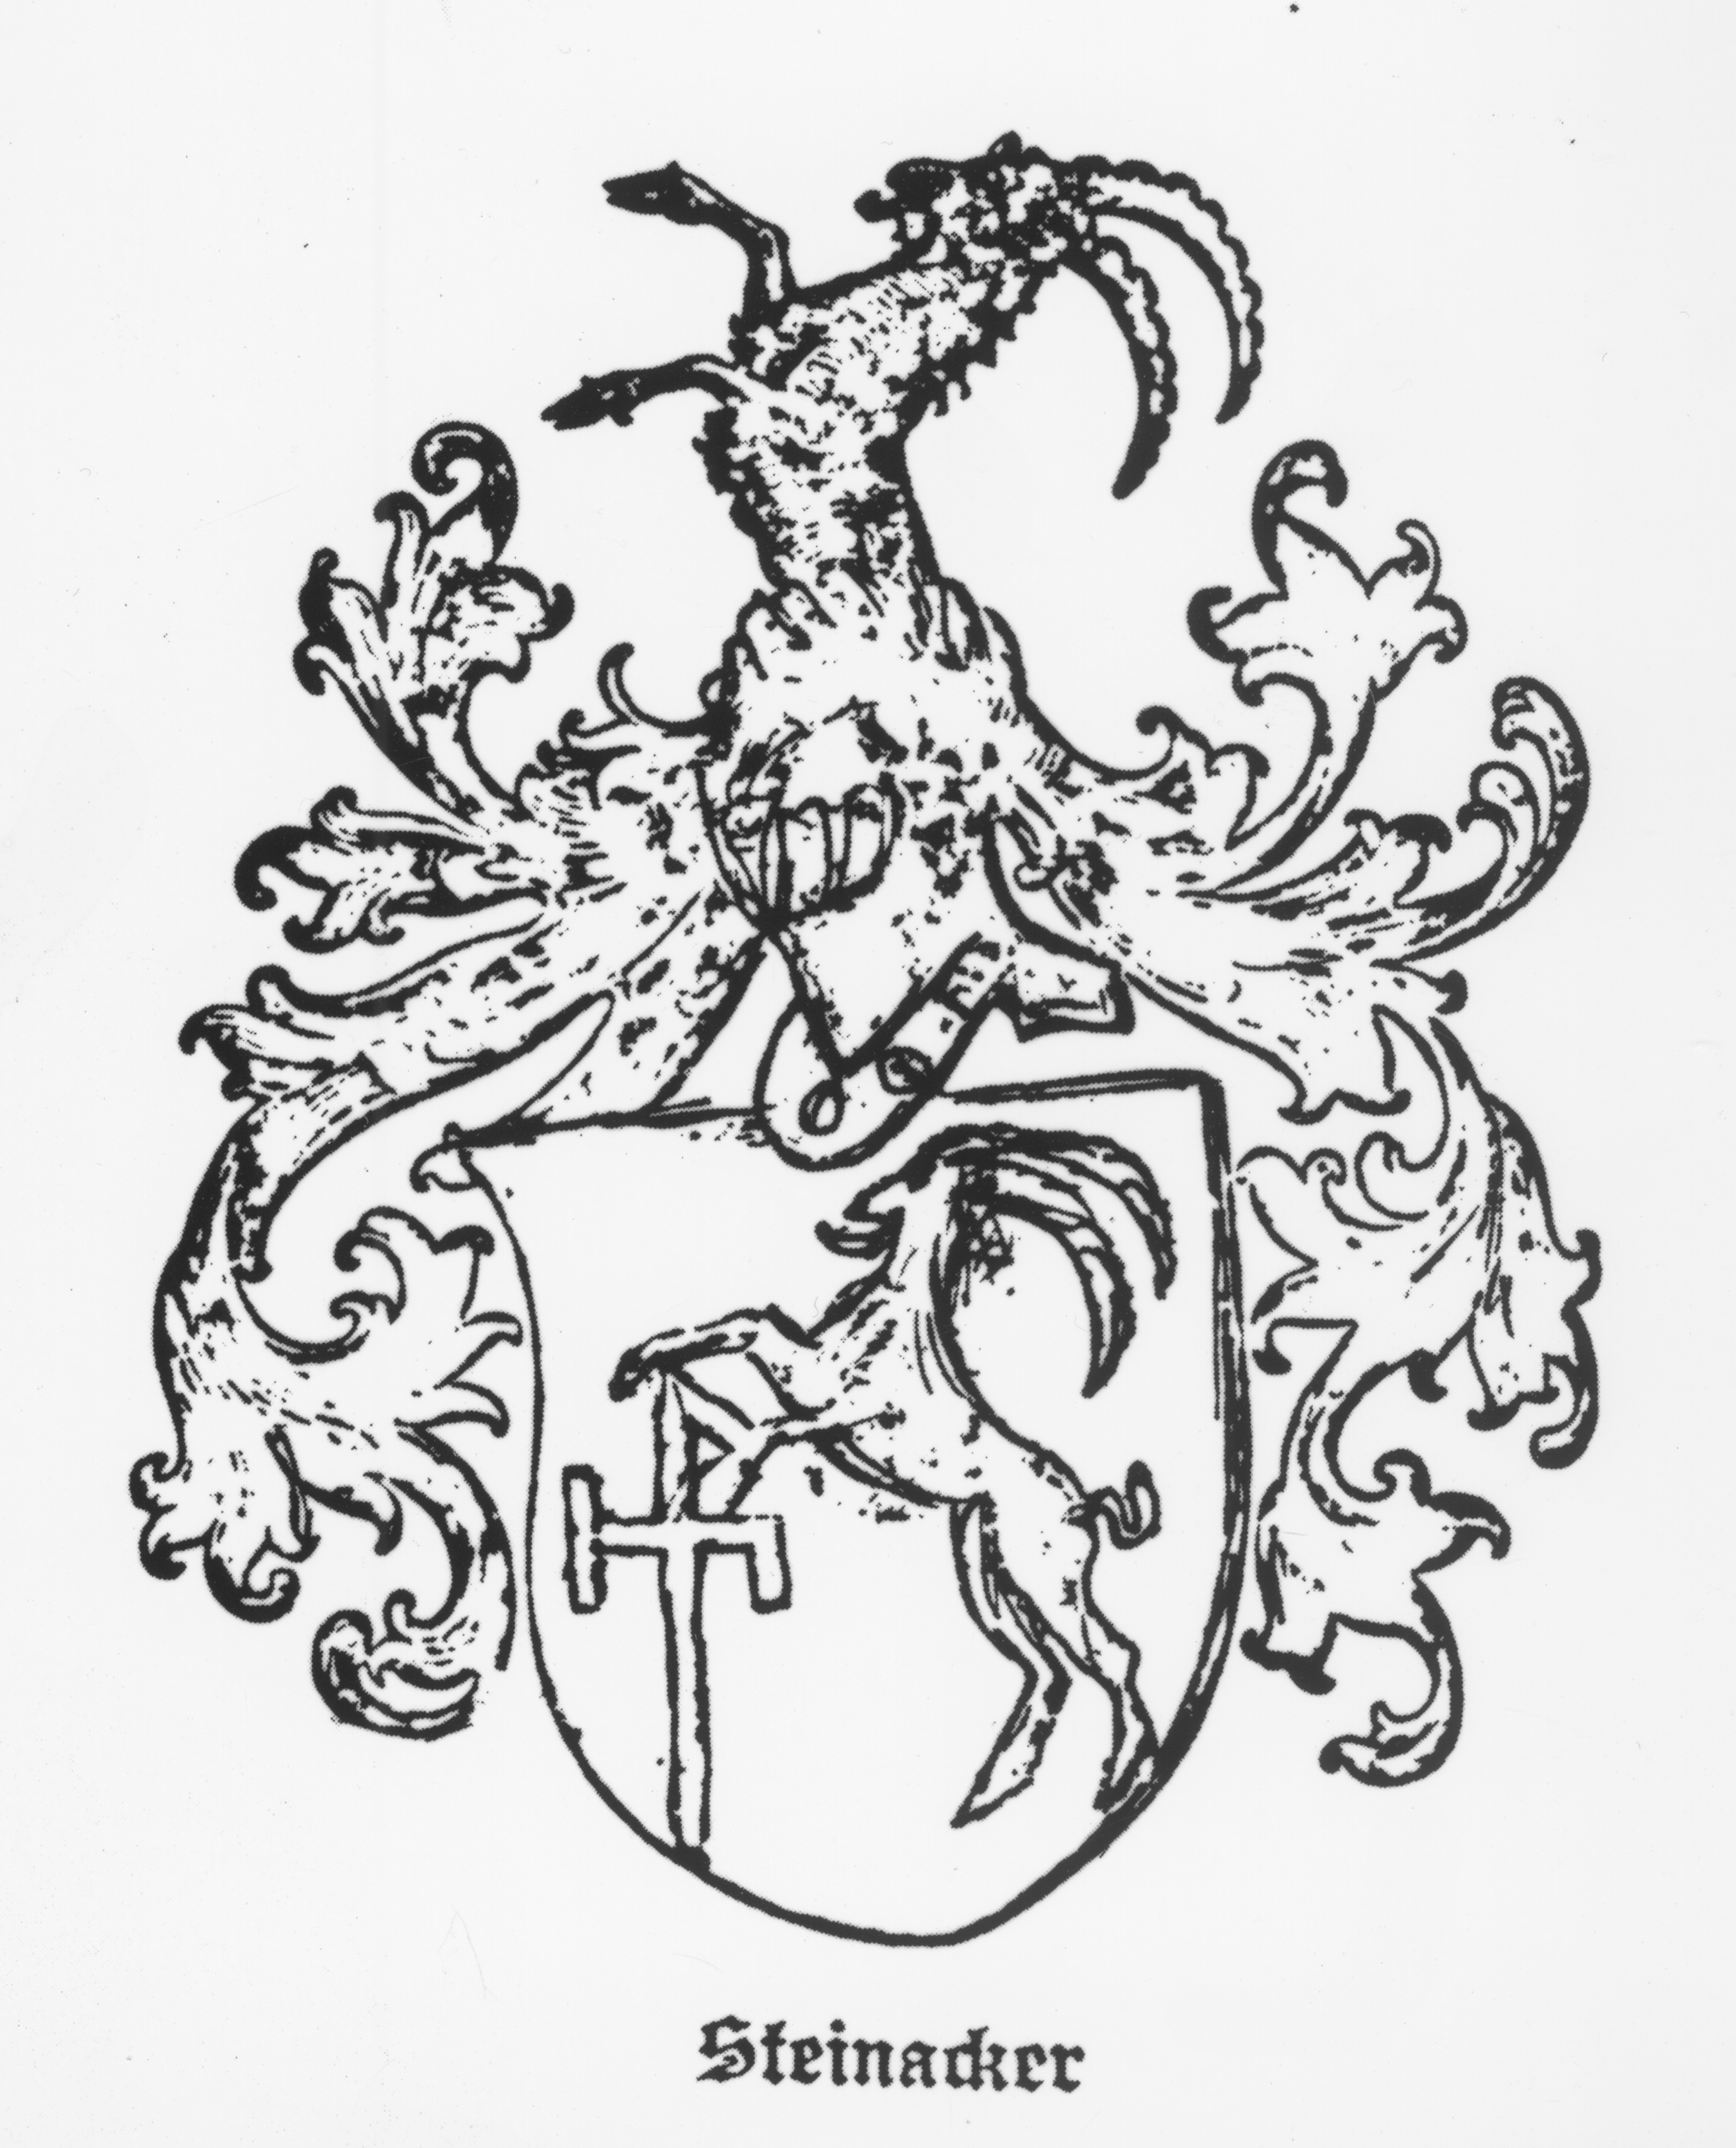 Steinacker, from a city of Quedlinburg in the Province of Lower Saxony. The coat of arms dated 1606. The family was Evangelical Lutheran, with seats in Brunswick, Holzminden, in Sangershausm in the Province of Thuringia, in Ilsfeld in Vienna, in Klosterneuberg near Vienna, in Innsbruck, in Kaltenstein near Hungarian Altenburg, in Funfkirchen and in Fiume in Hungary.